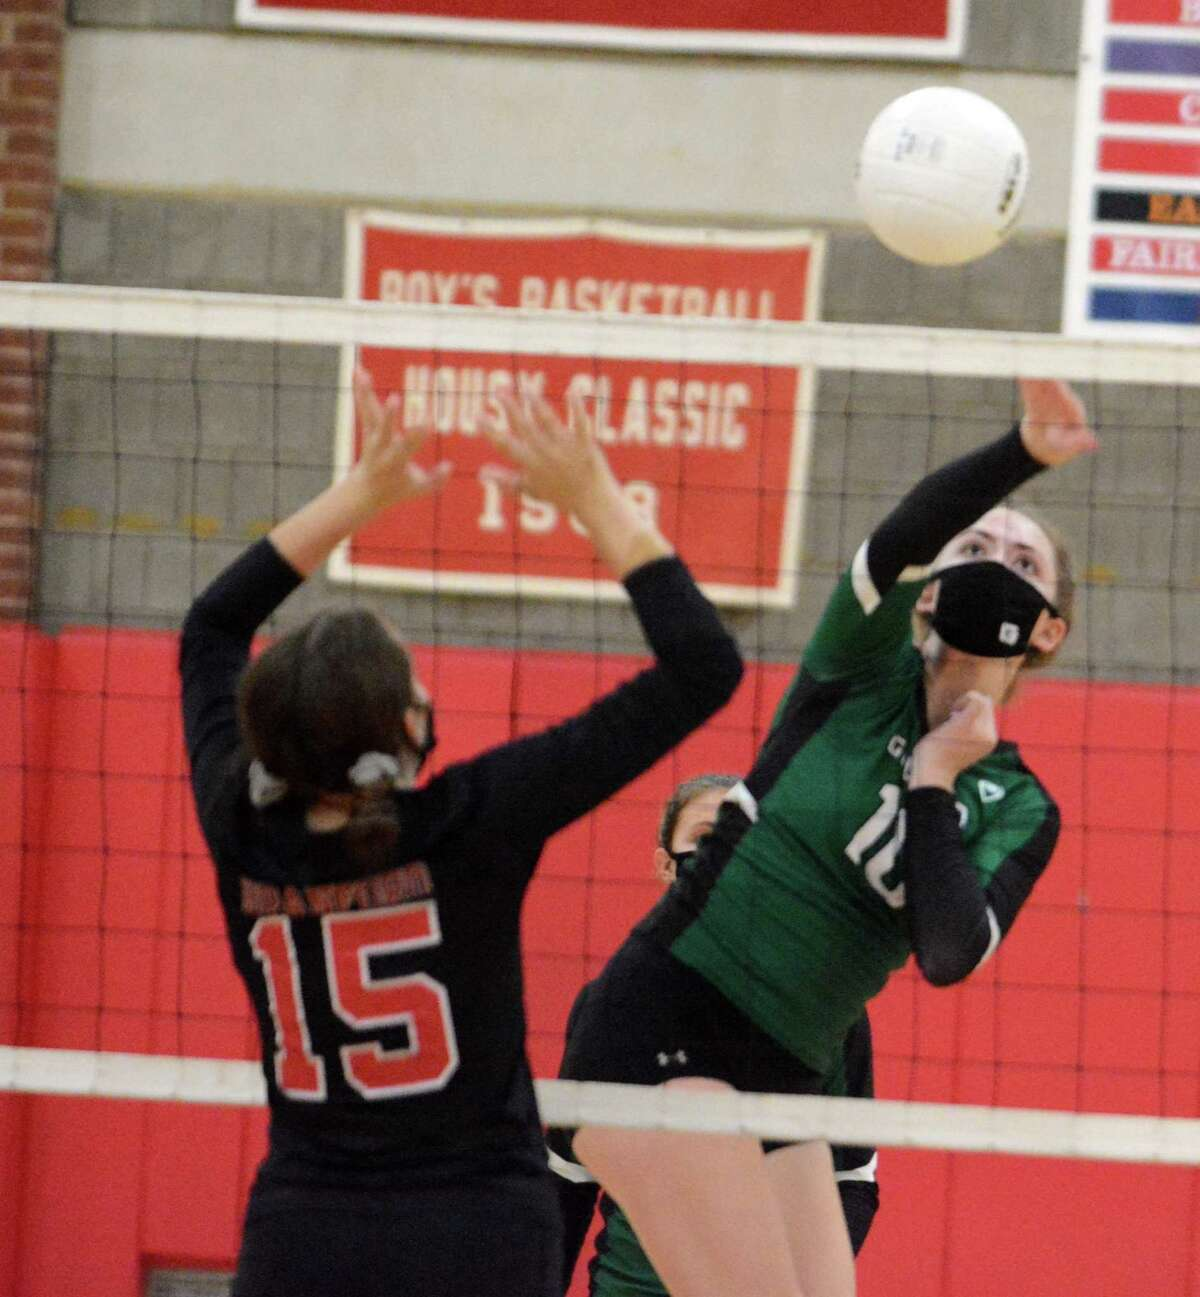 Guilford's Emily Brouder spikes the ball past Branford's Breanna Botte during a girls volleyball match at Branford on Tuesday, Oct. 14, 2020 in Branford, Conn.